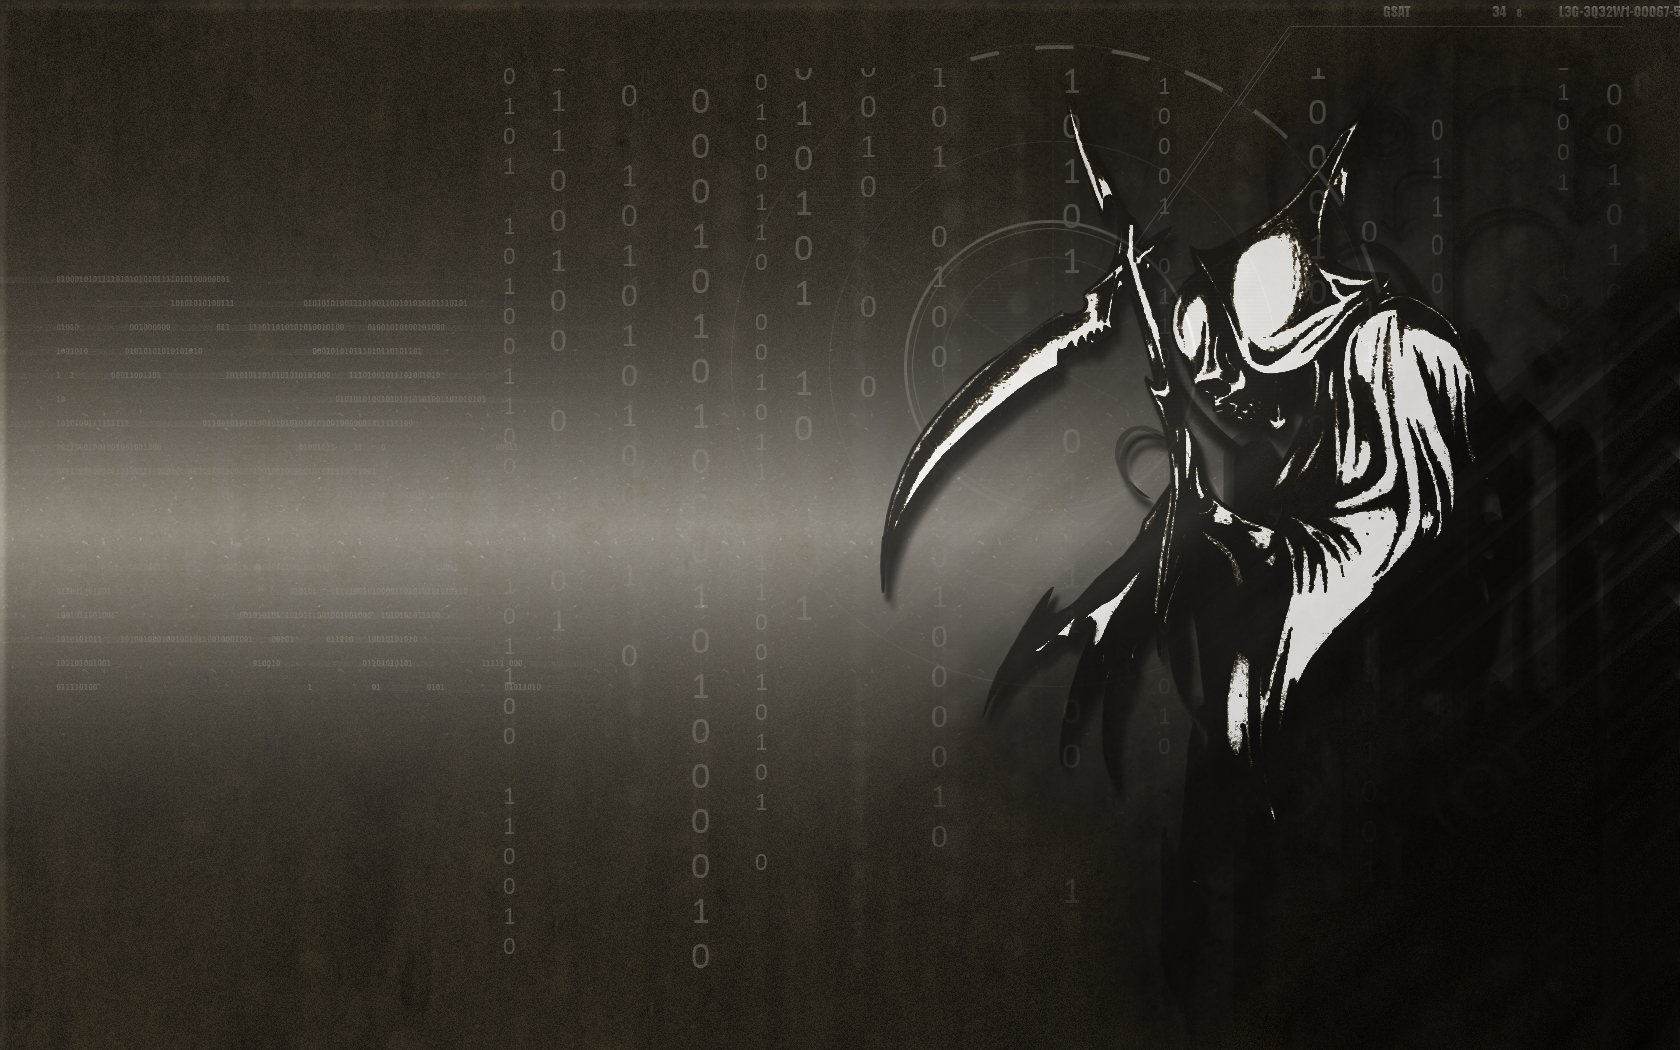 Alpha coders wallpaper abyss dark scary 14235